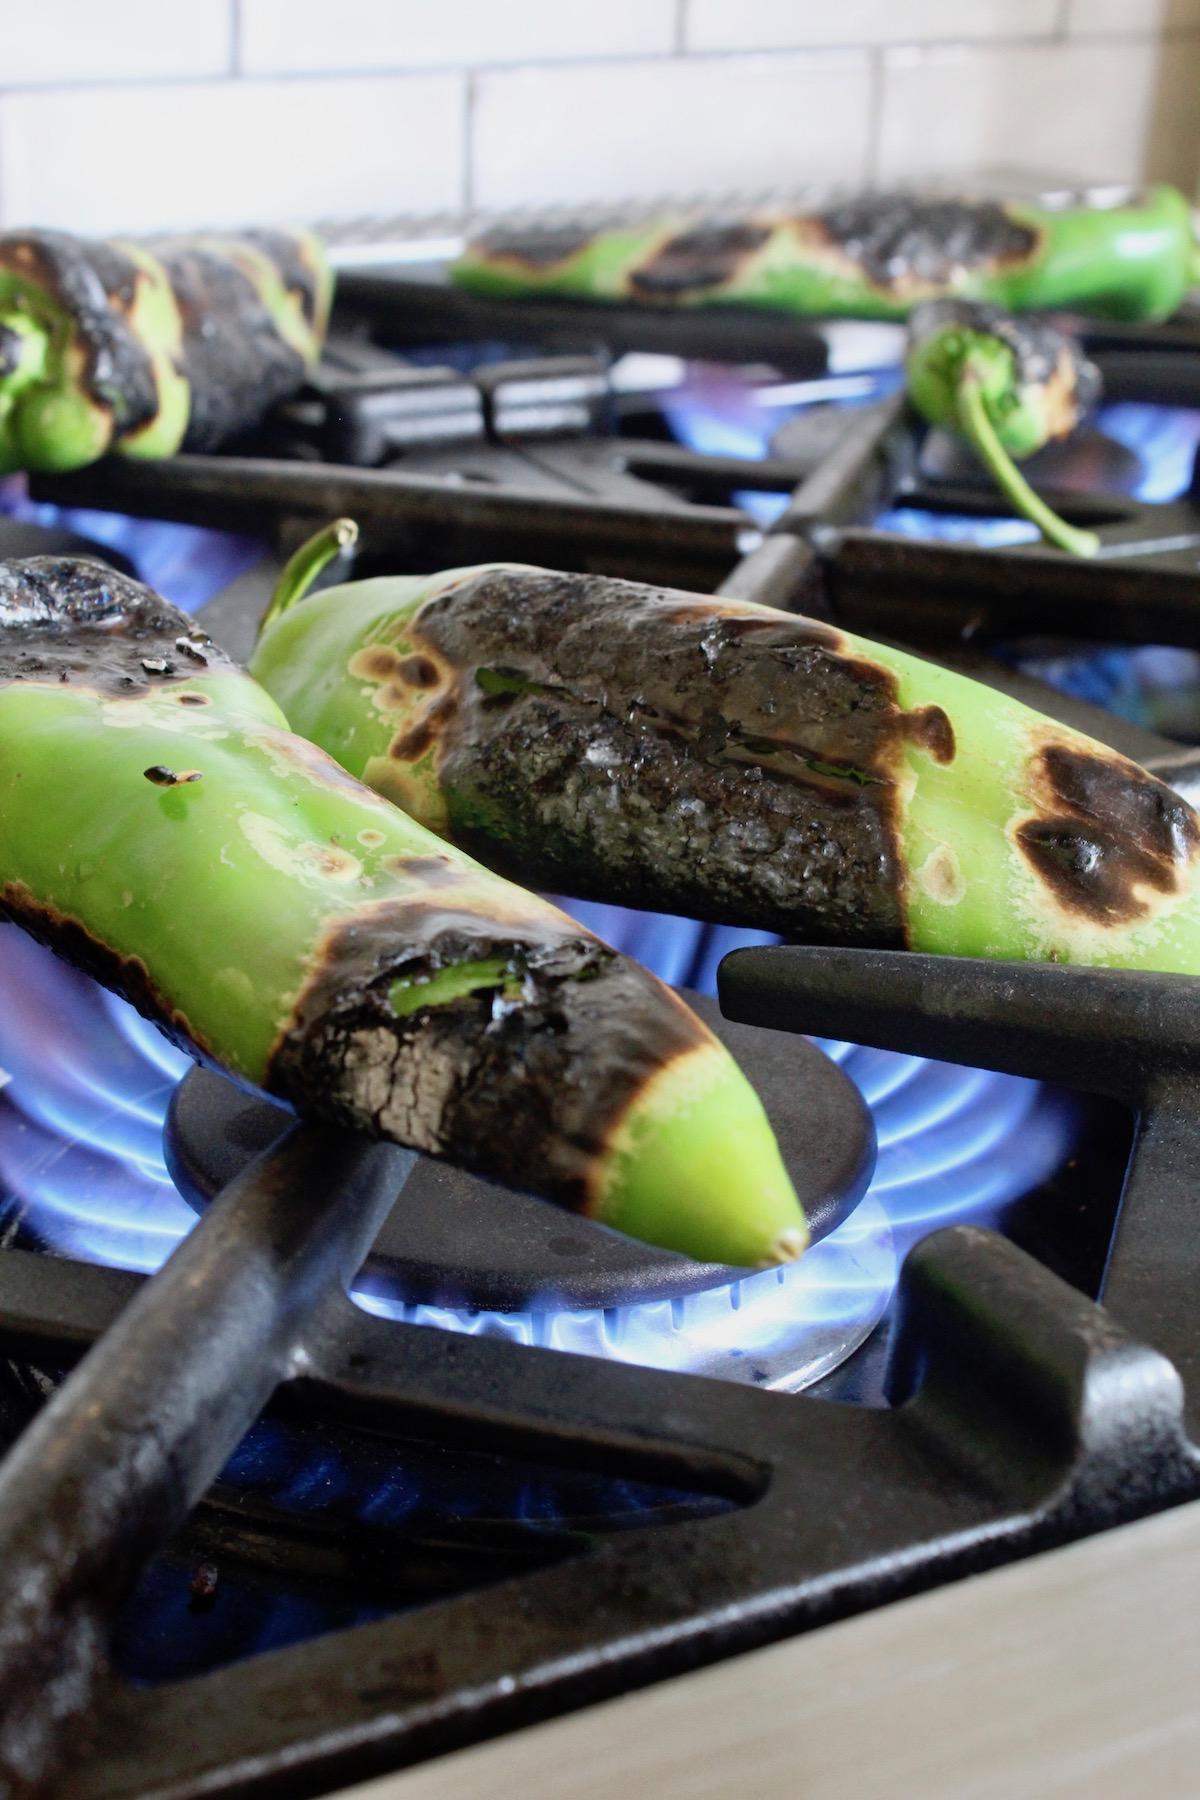 hatch chiles on burners of stove being roasted